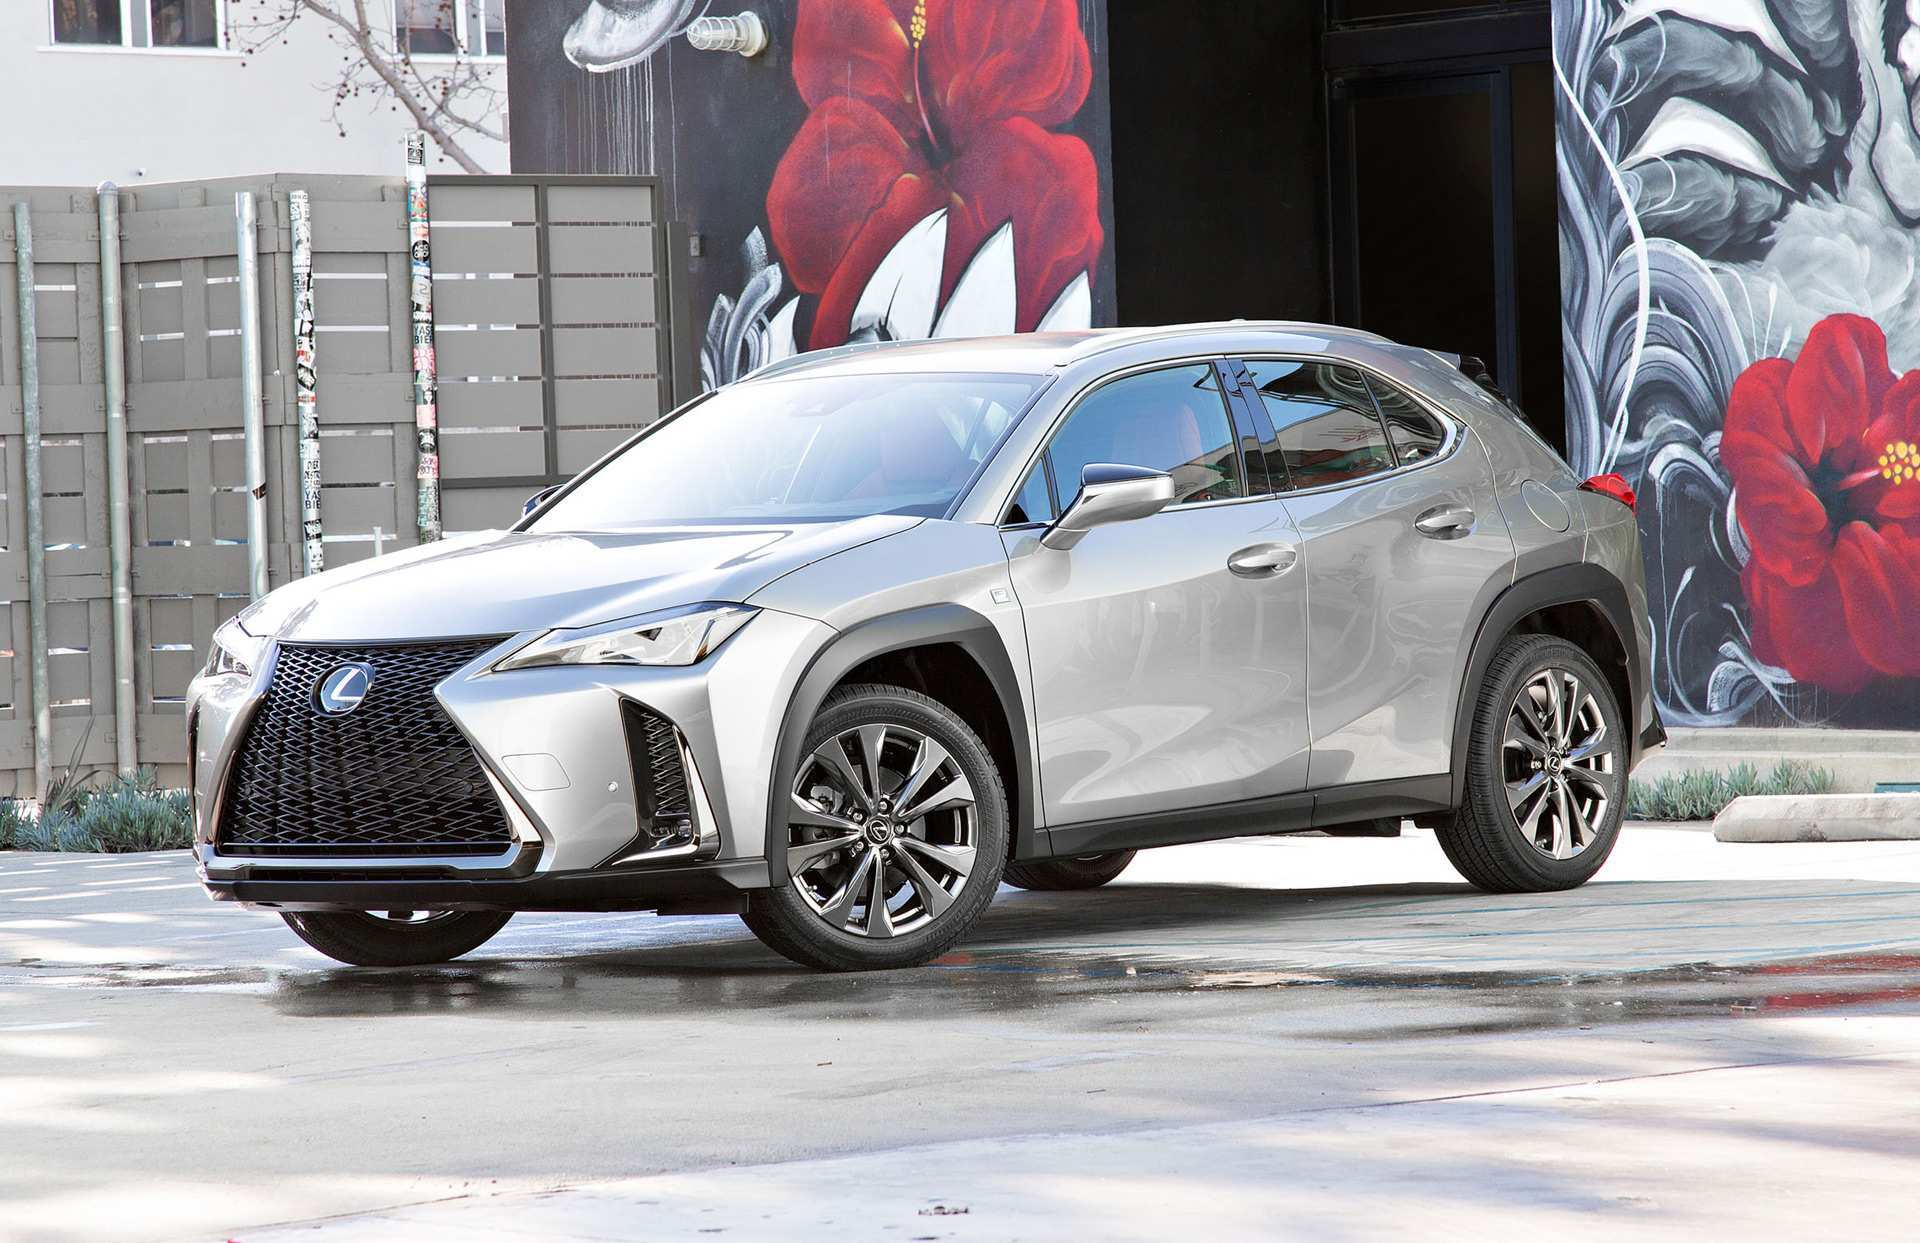 29 Best Review 2019 Lexus Hybrid Performance by 2019 Lexus Hybrid